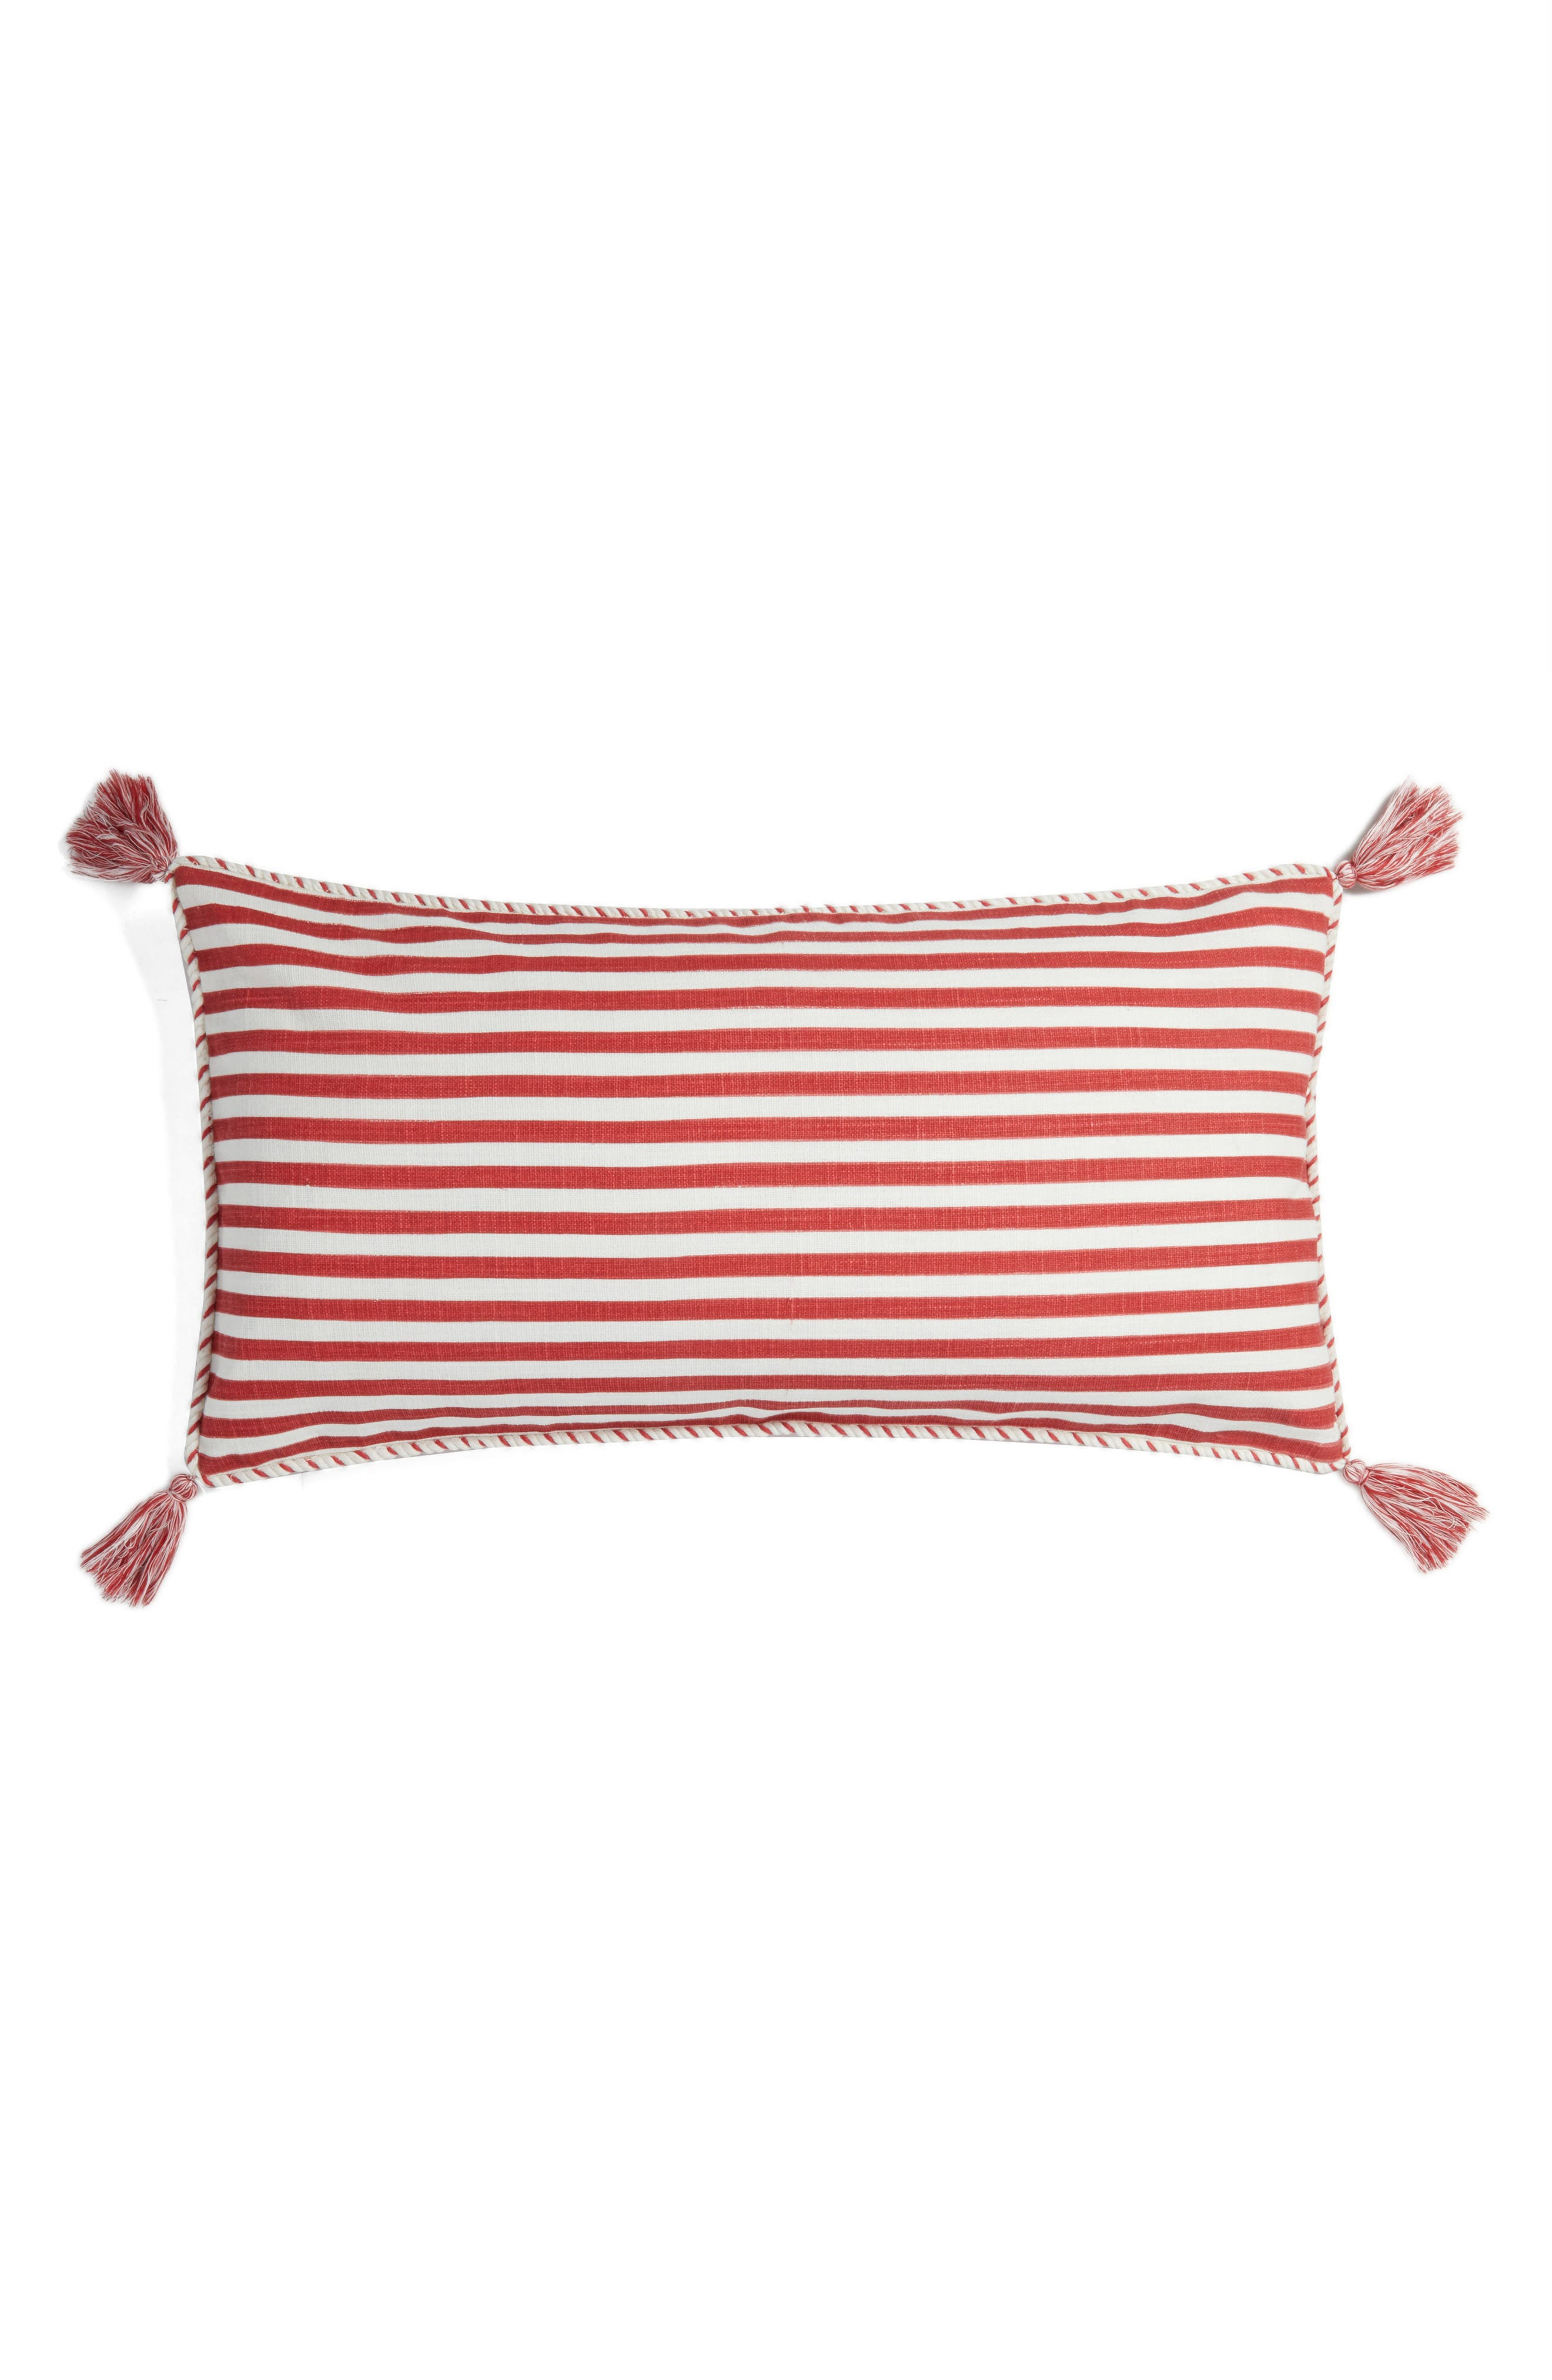 Stripe Tassel Accent Pillow,                             Main thumbnail 1, color,                             950